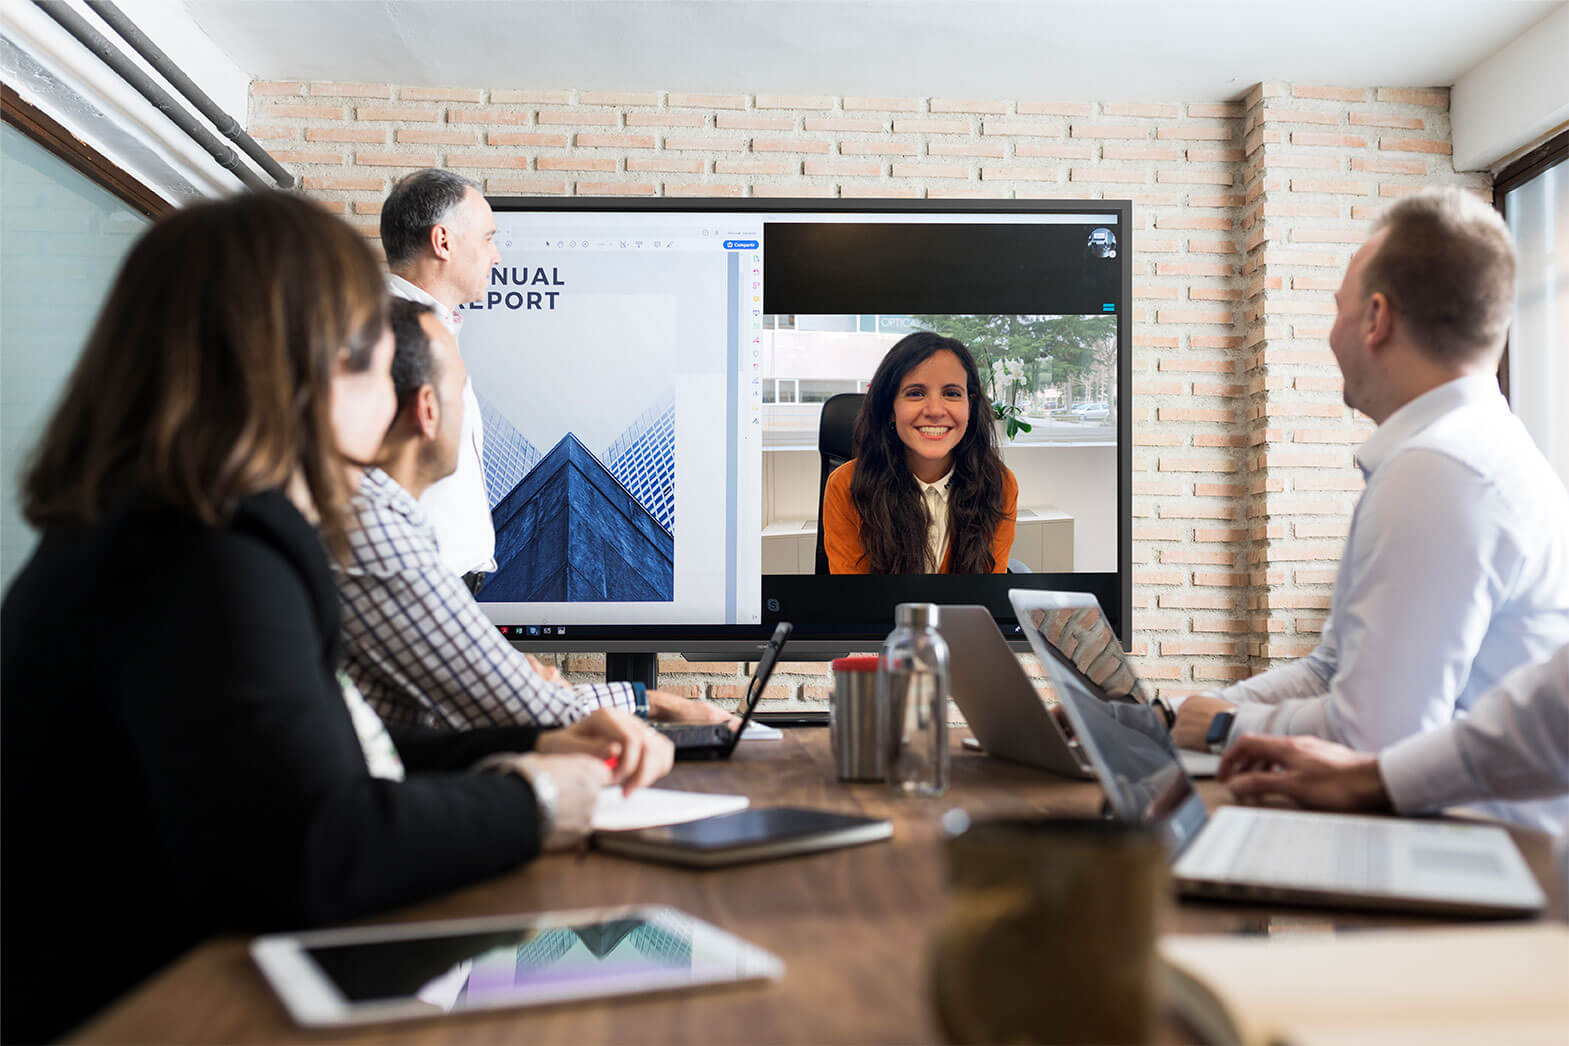 Find out how interactive displays are driving telework